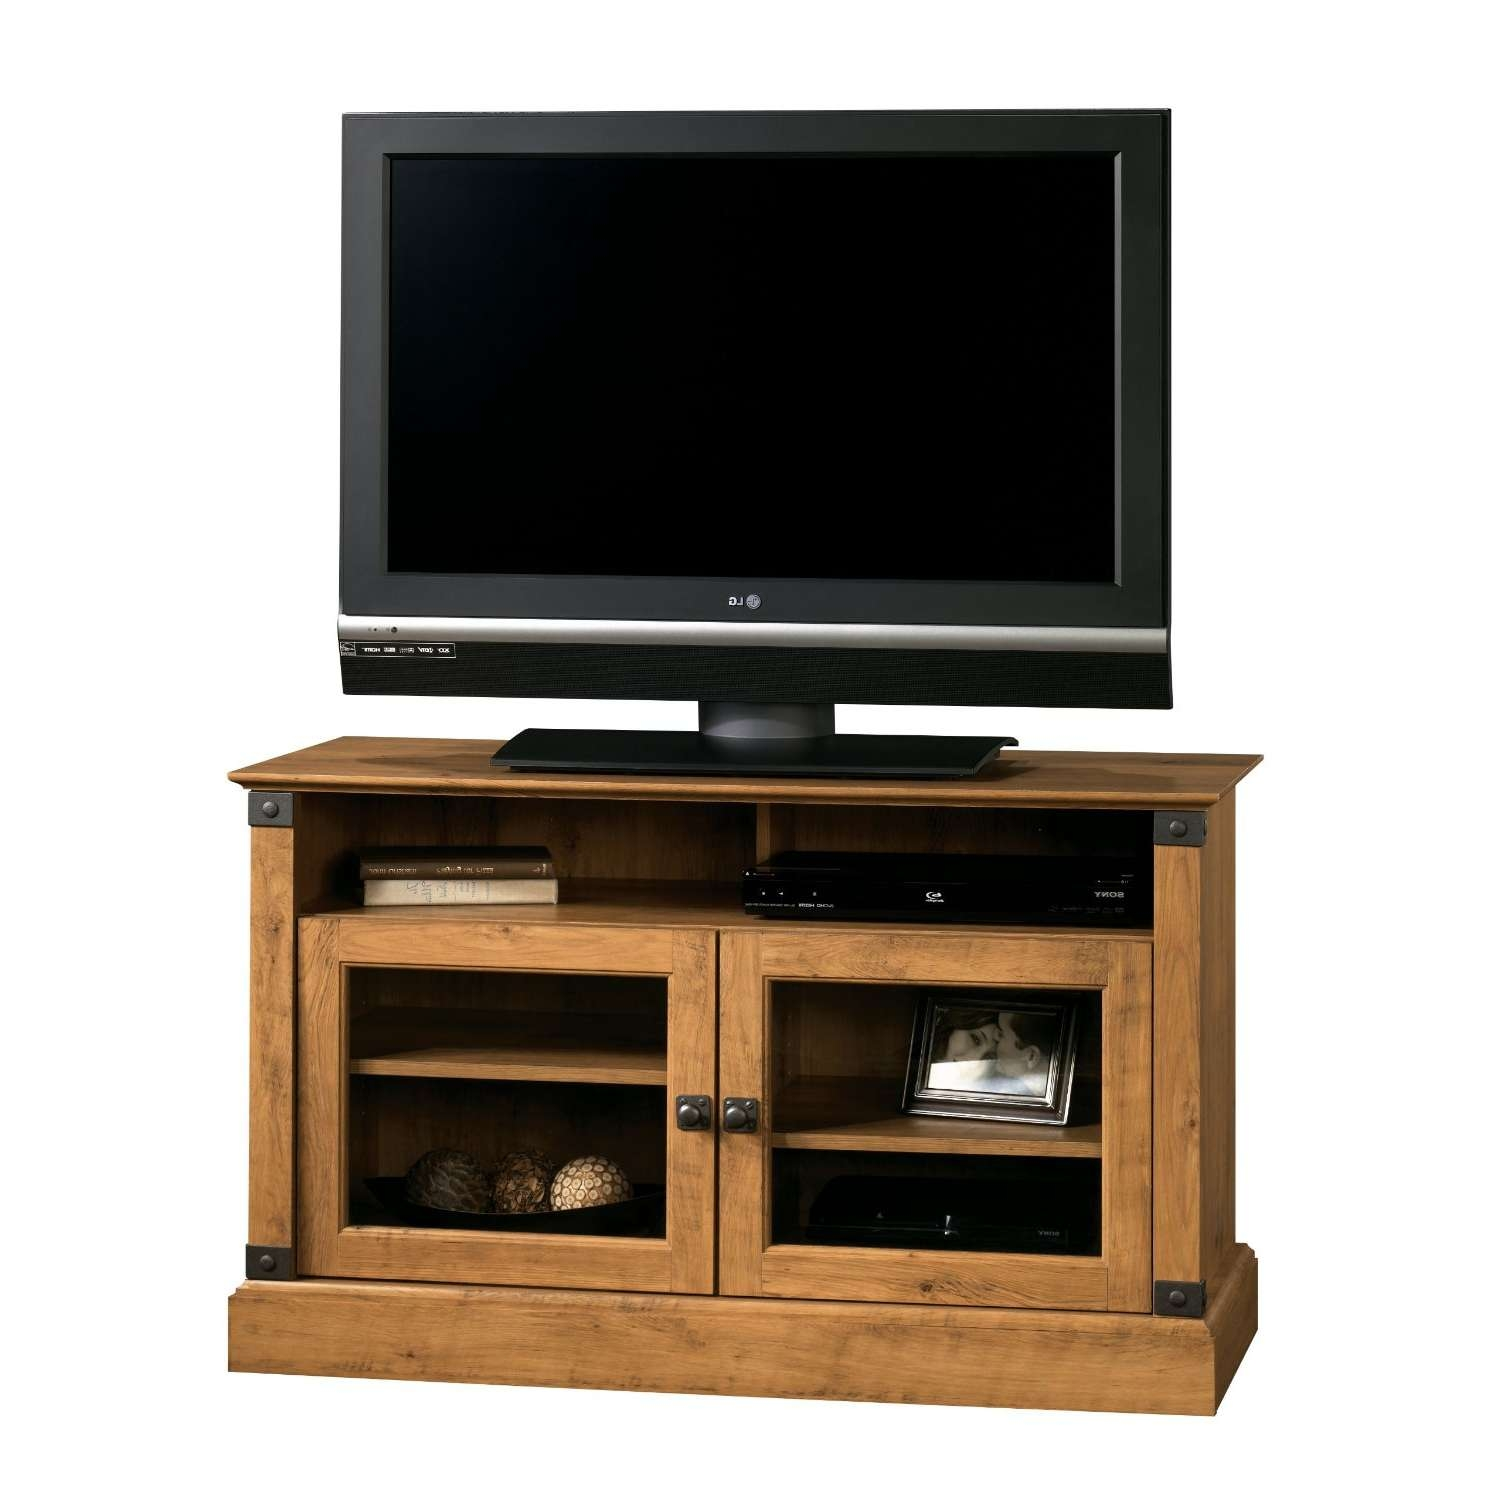 Furniture: Turquoise Reclaimed Wood Tv Stand With Glass Door For With Wooden Tv Cabinets With Glass Doors (View 11 of 20)